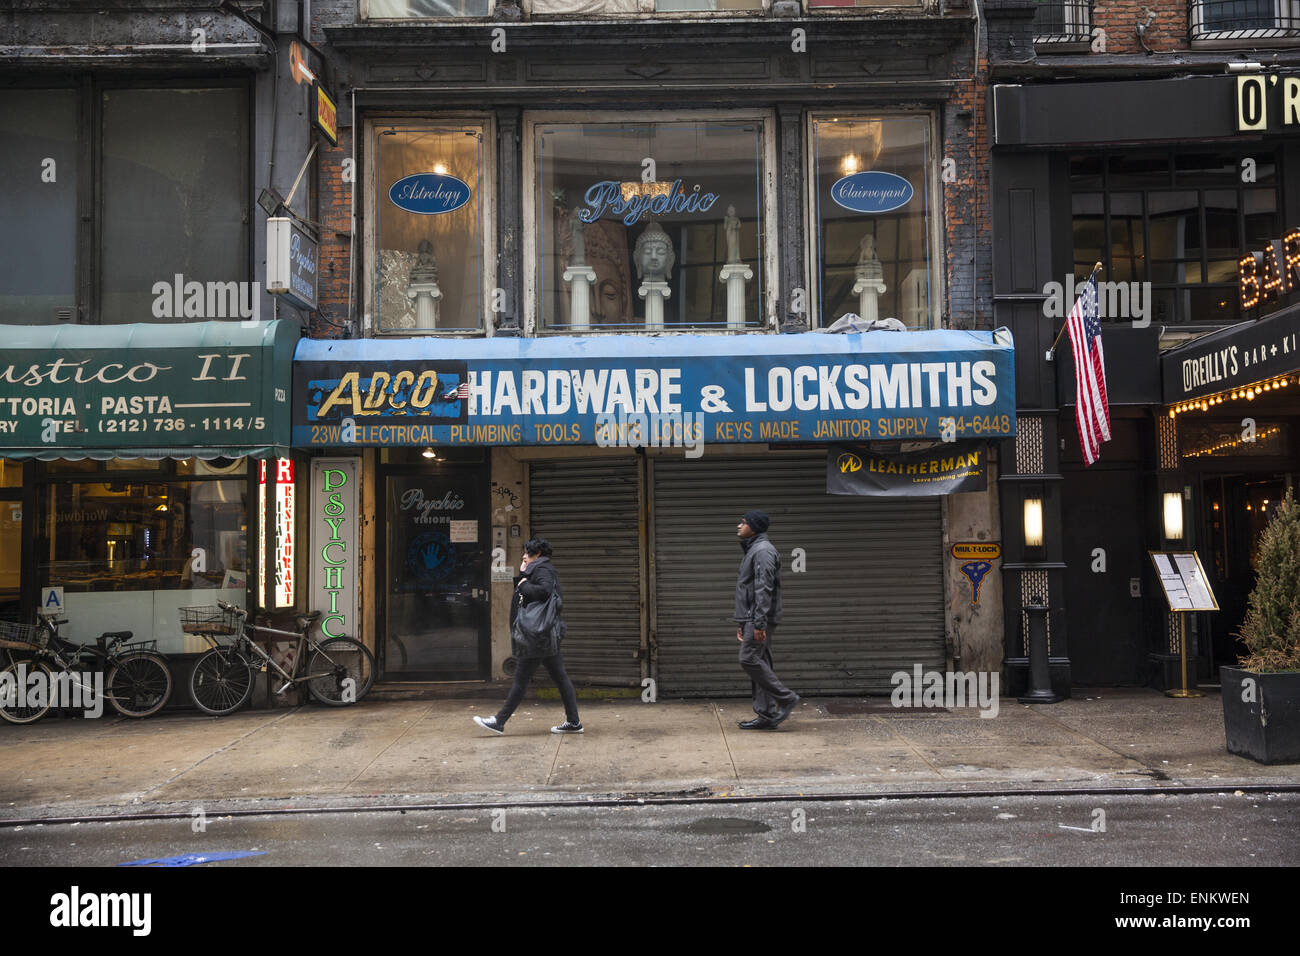 Hardware store with a psychic upstairs, West 35th Street, Manhattan, NYC. - Stock Image